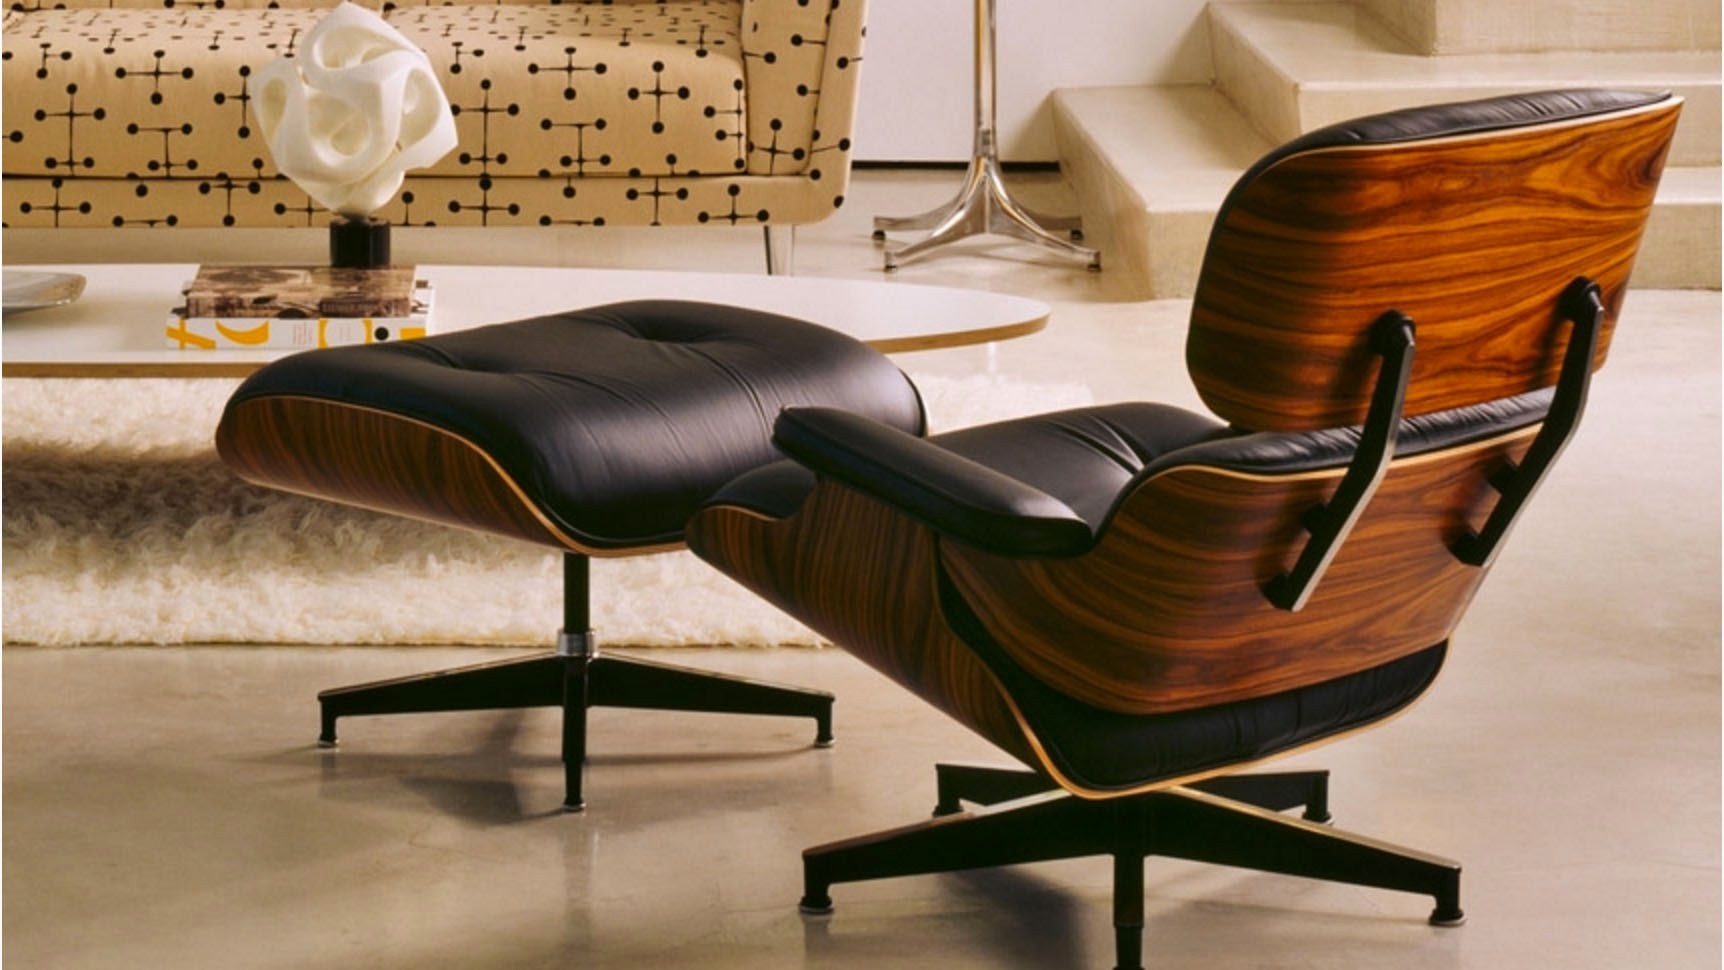 Vitra Lounge Chair Tweedehands Eames Lounge Chair Gebraucht Eames Lounge Chair Vitra Beautiful